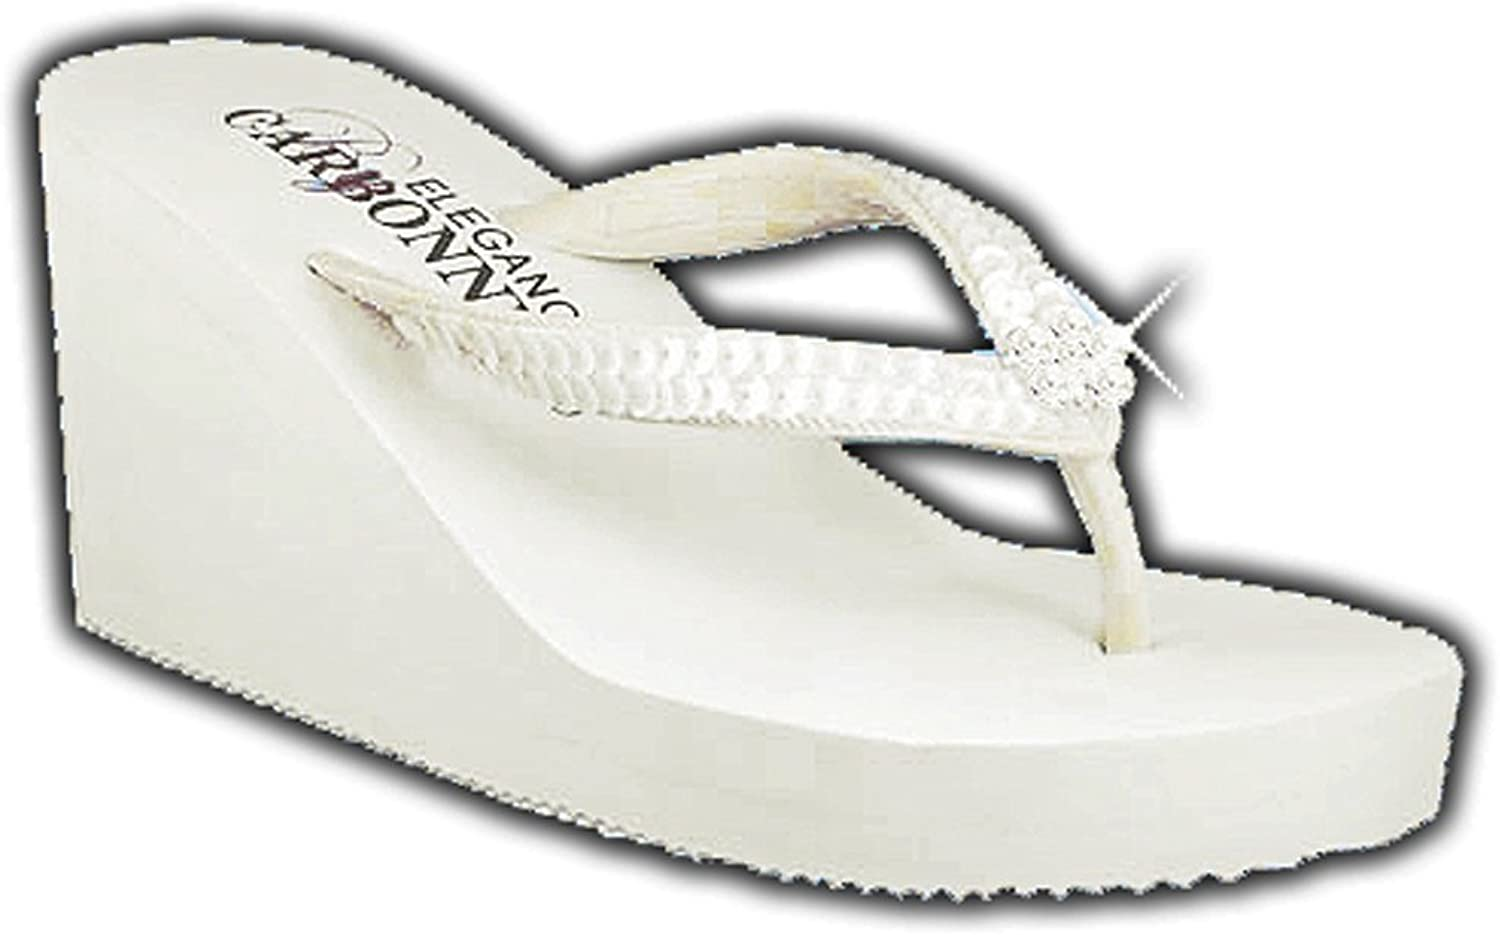 Elegance by Carbonneau Breeze Women's High Heel Flip Flop Ivory Foam Rubber Sandal